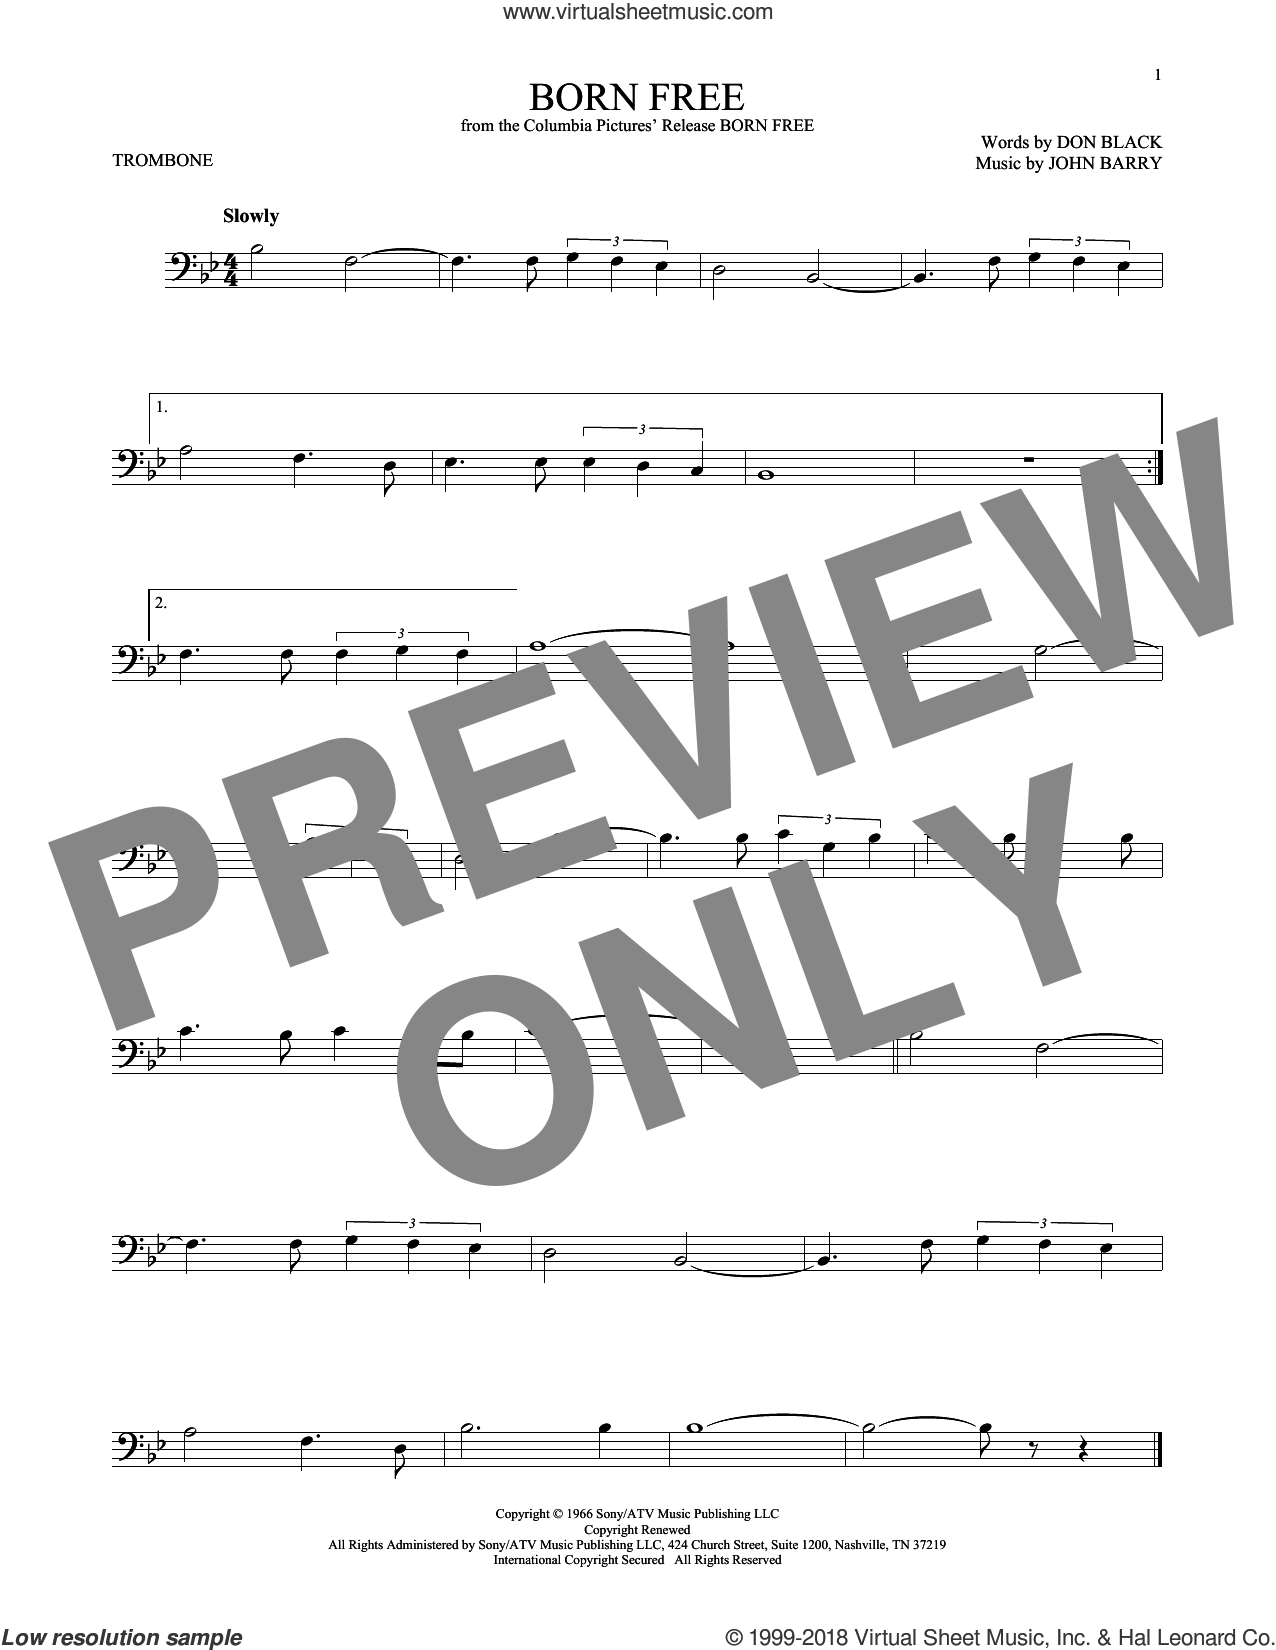 Born Free sheet music for trombone solo by Don Black, Roger Williams and John Barry, intermediate skill level